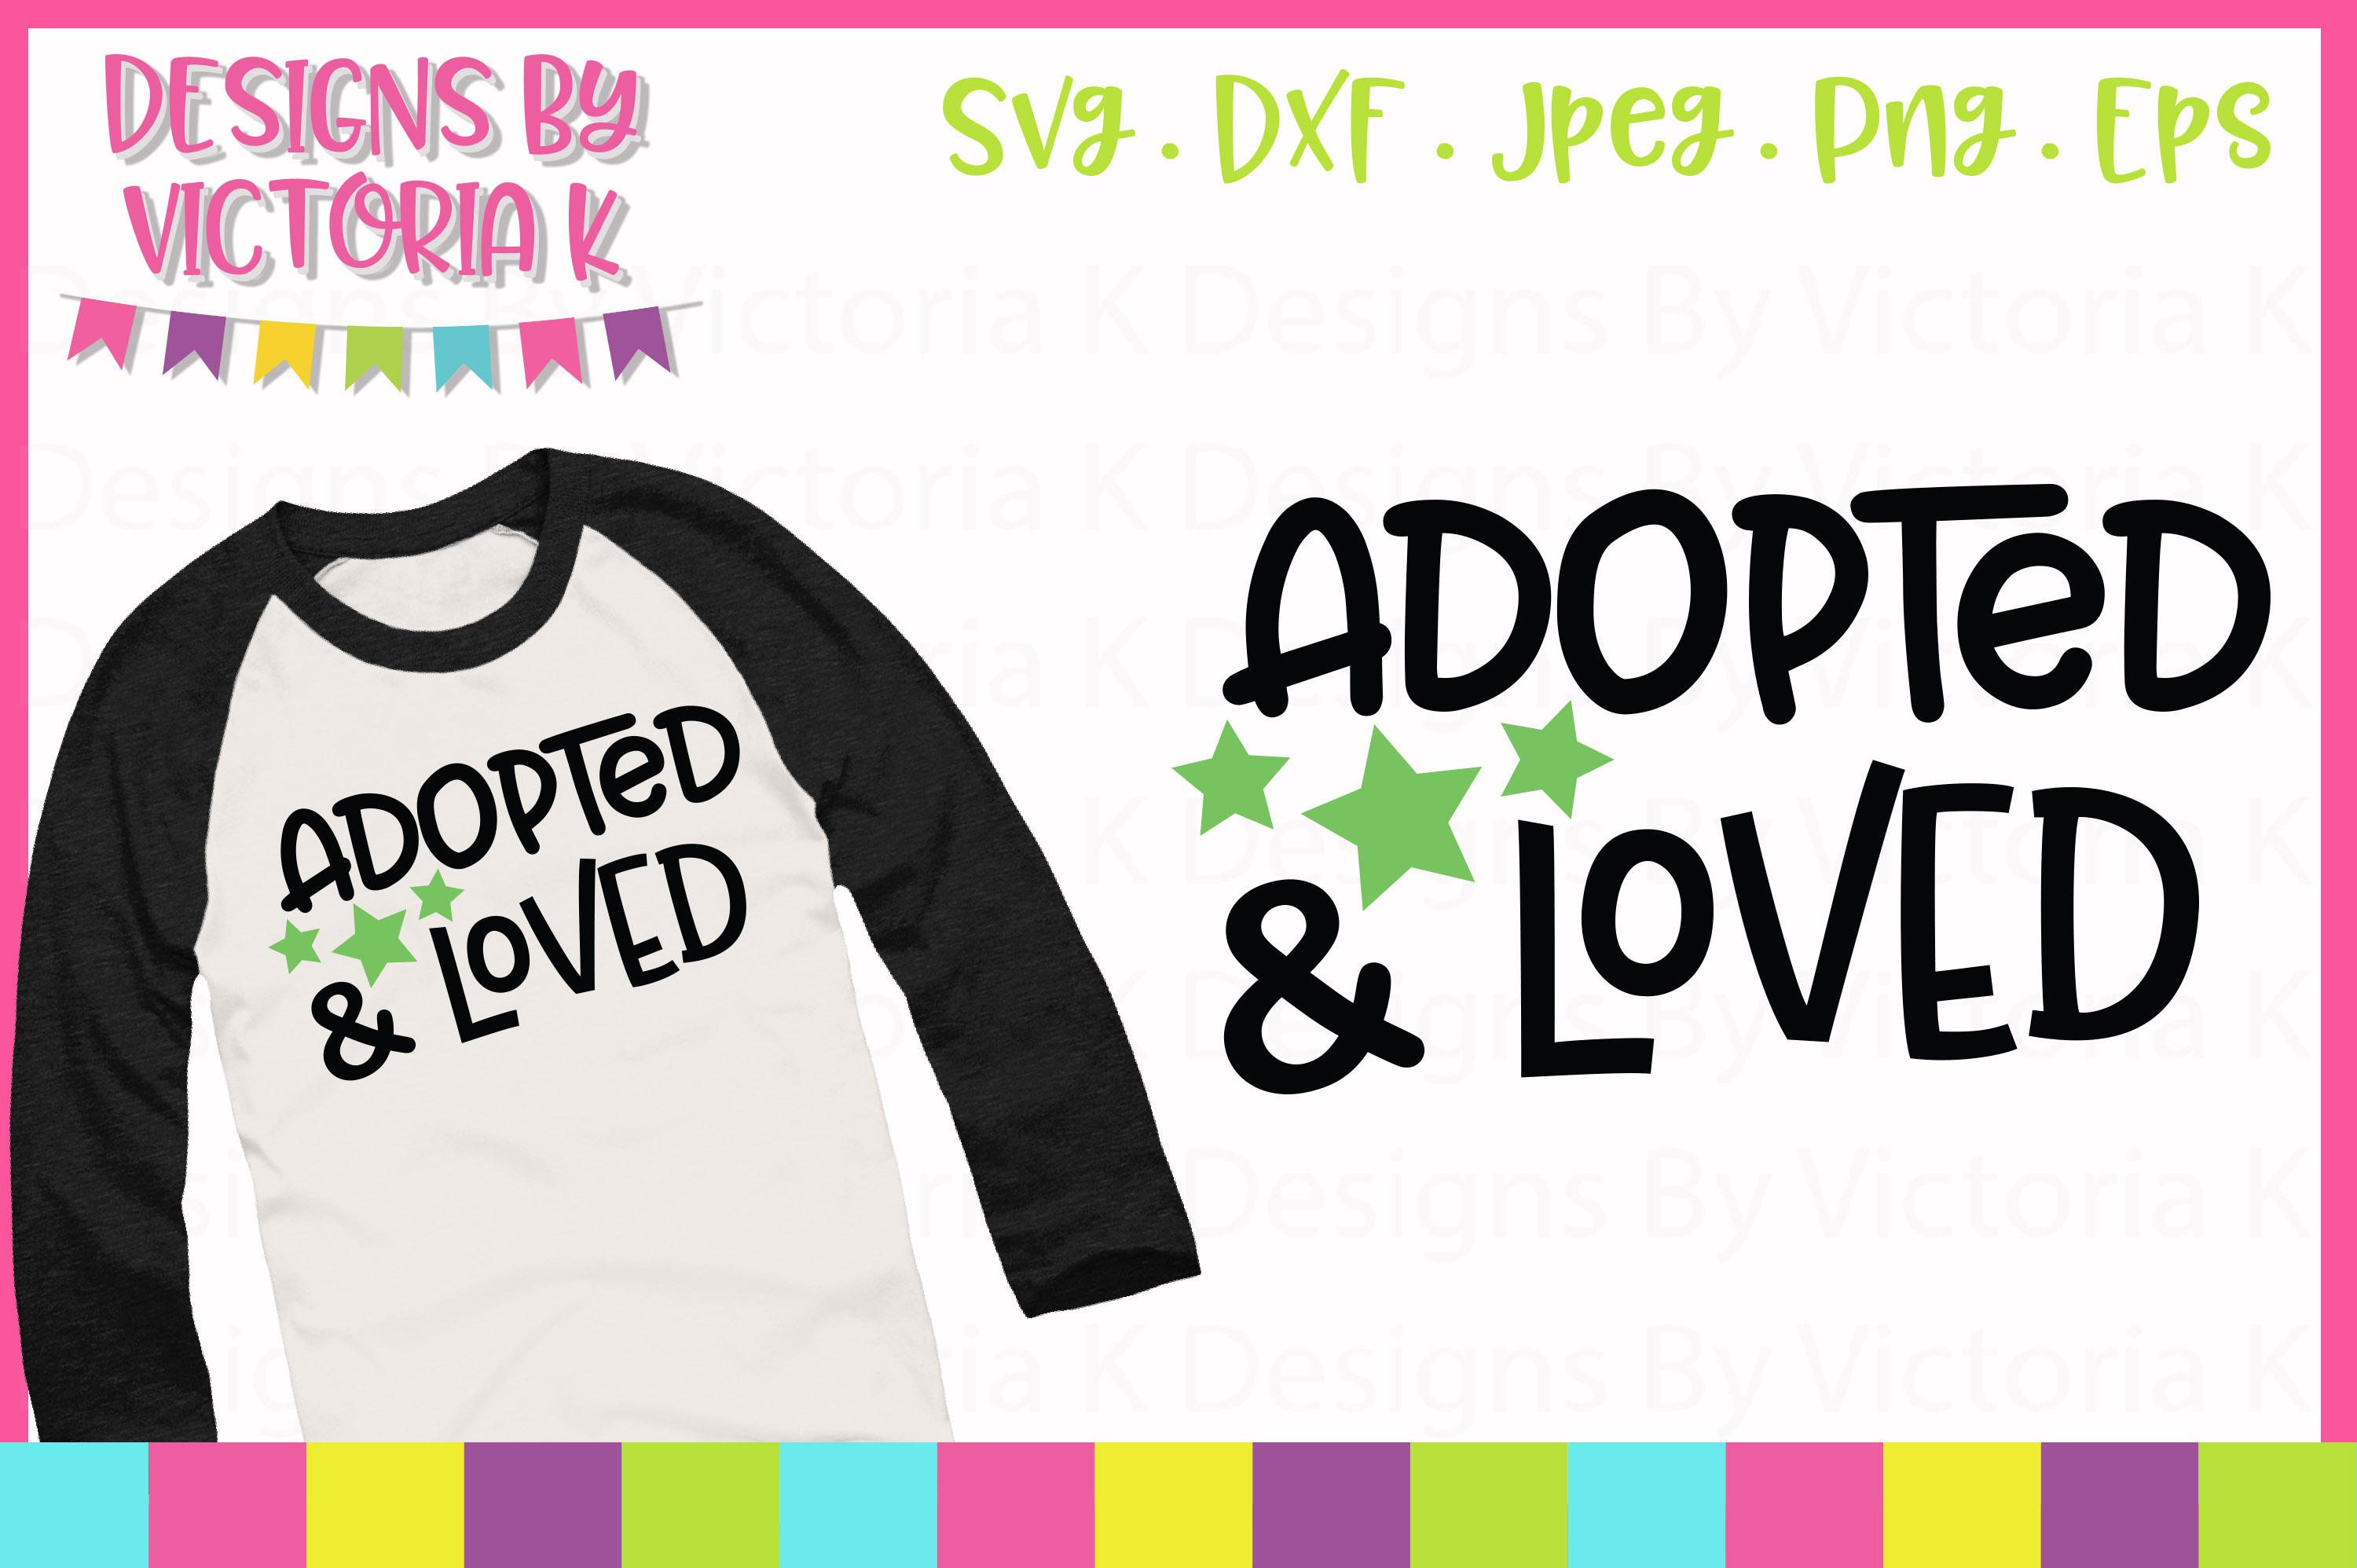 Adopted and Loved, SVG, DXF, PNG example image 1